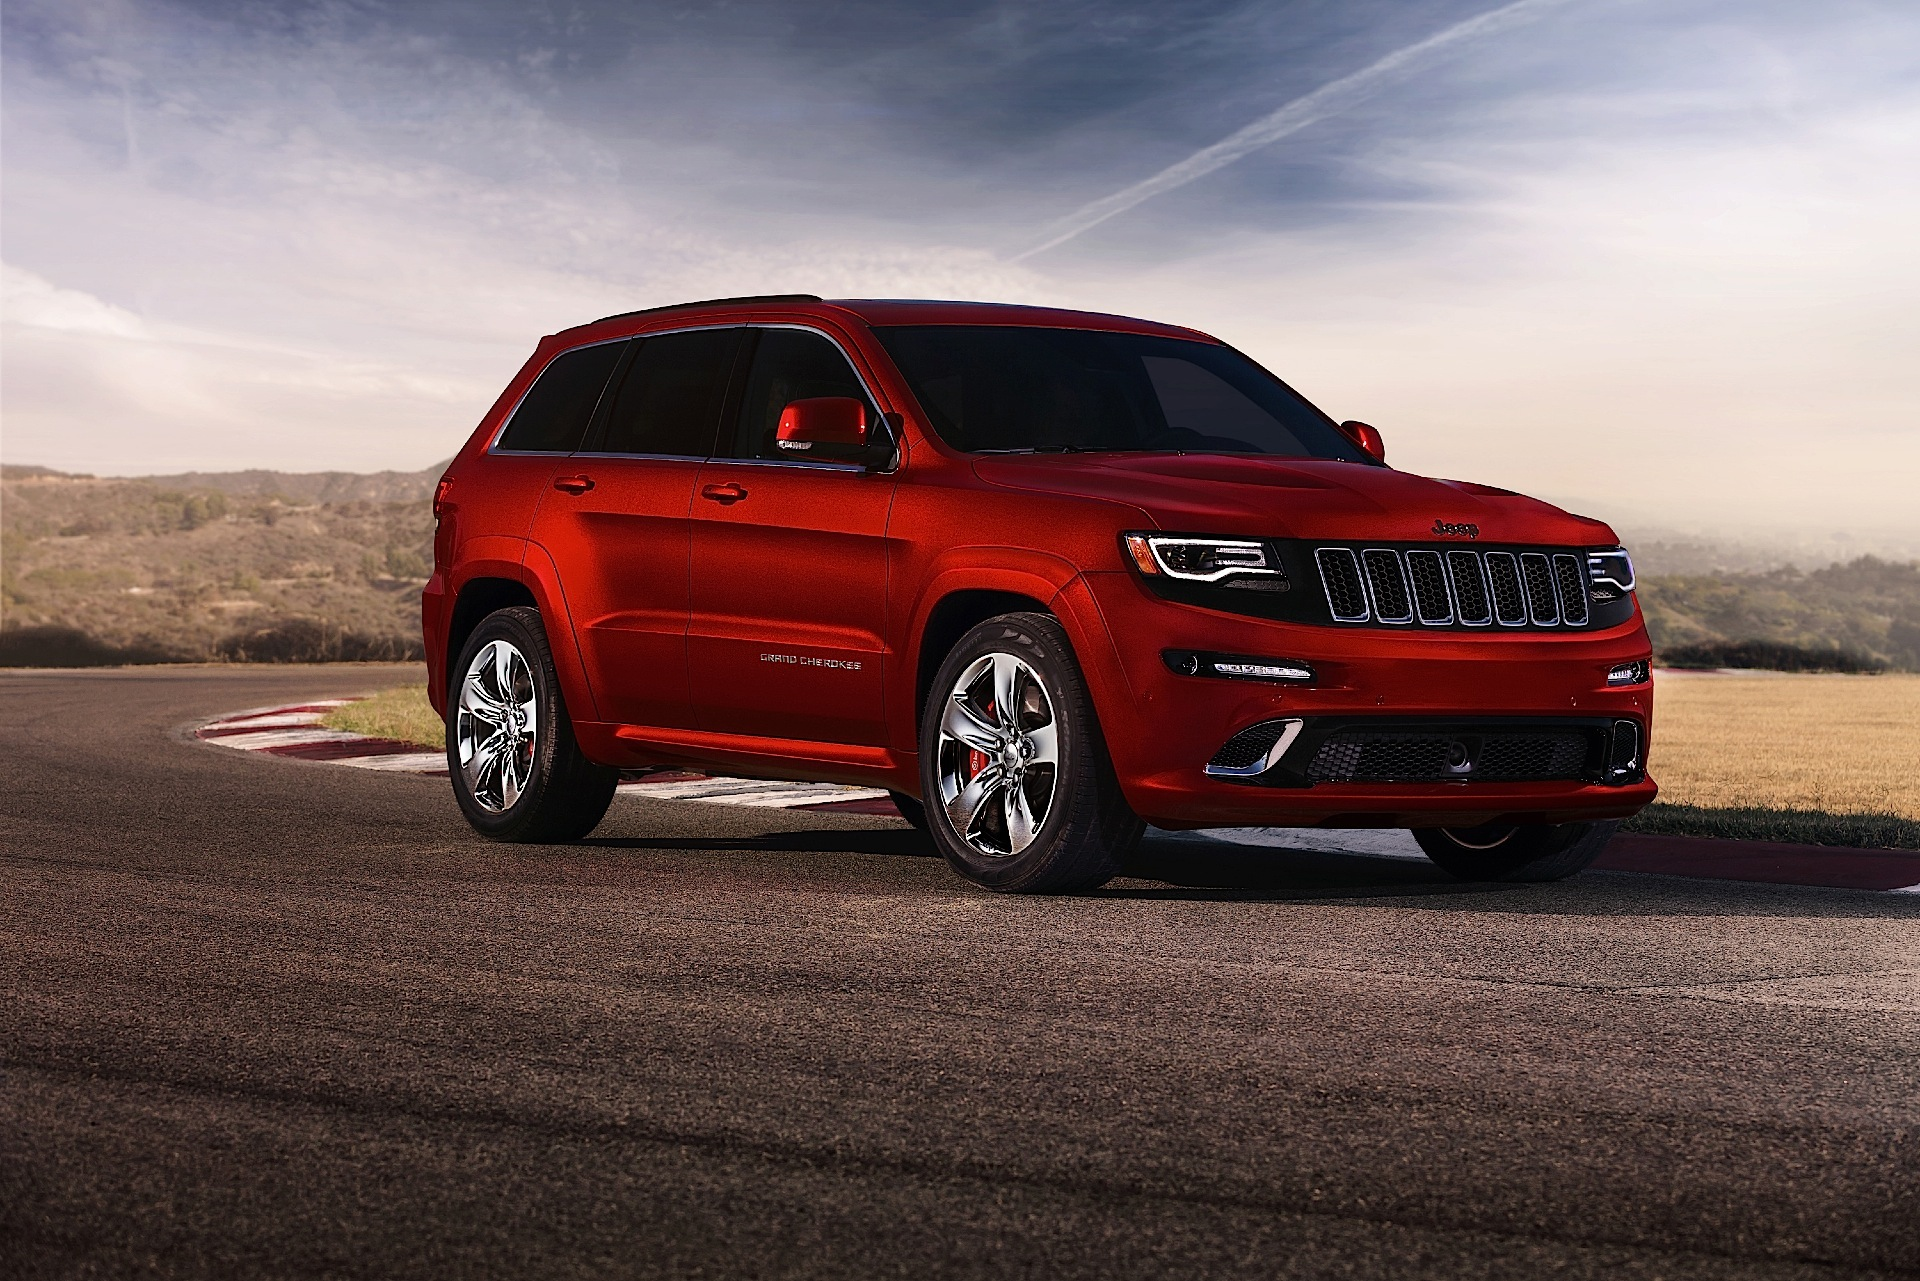 jeep grand cherokee srt specs 2013 2014 2015 2016. Black Bedroom Furniture Sets. Home Design Ideas